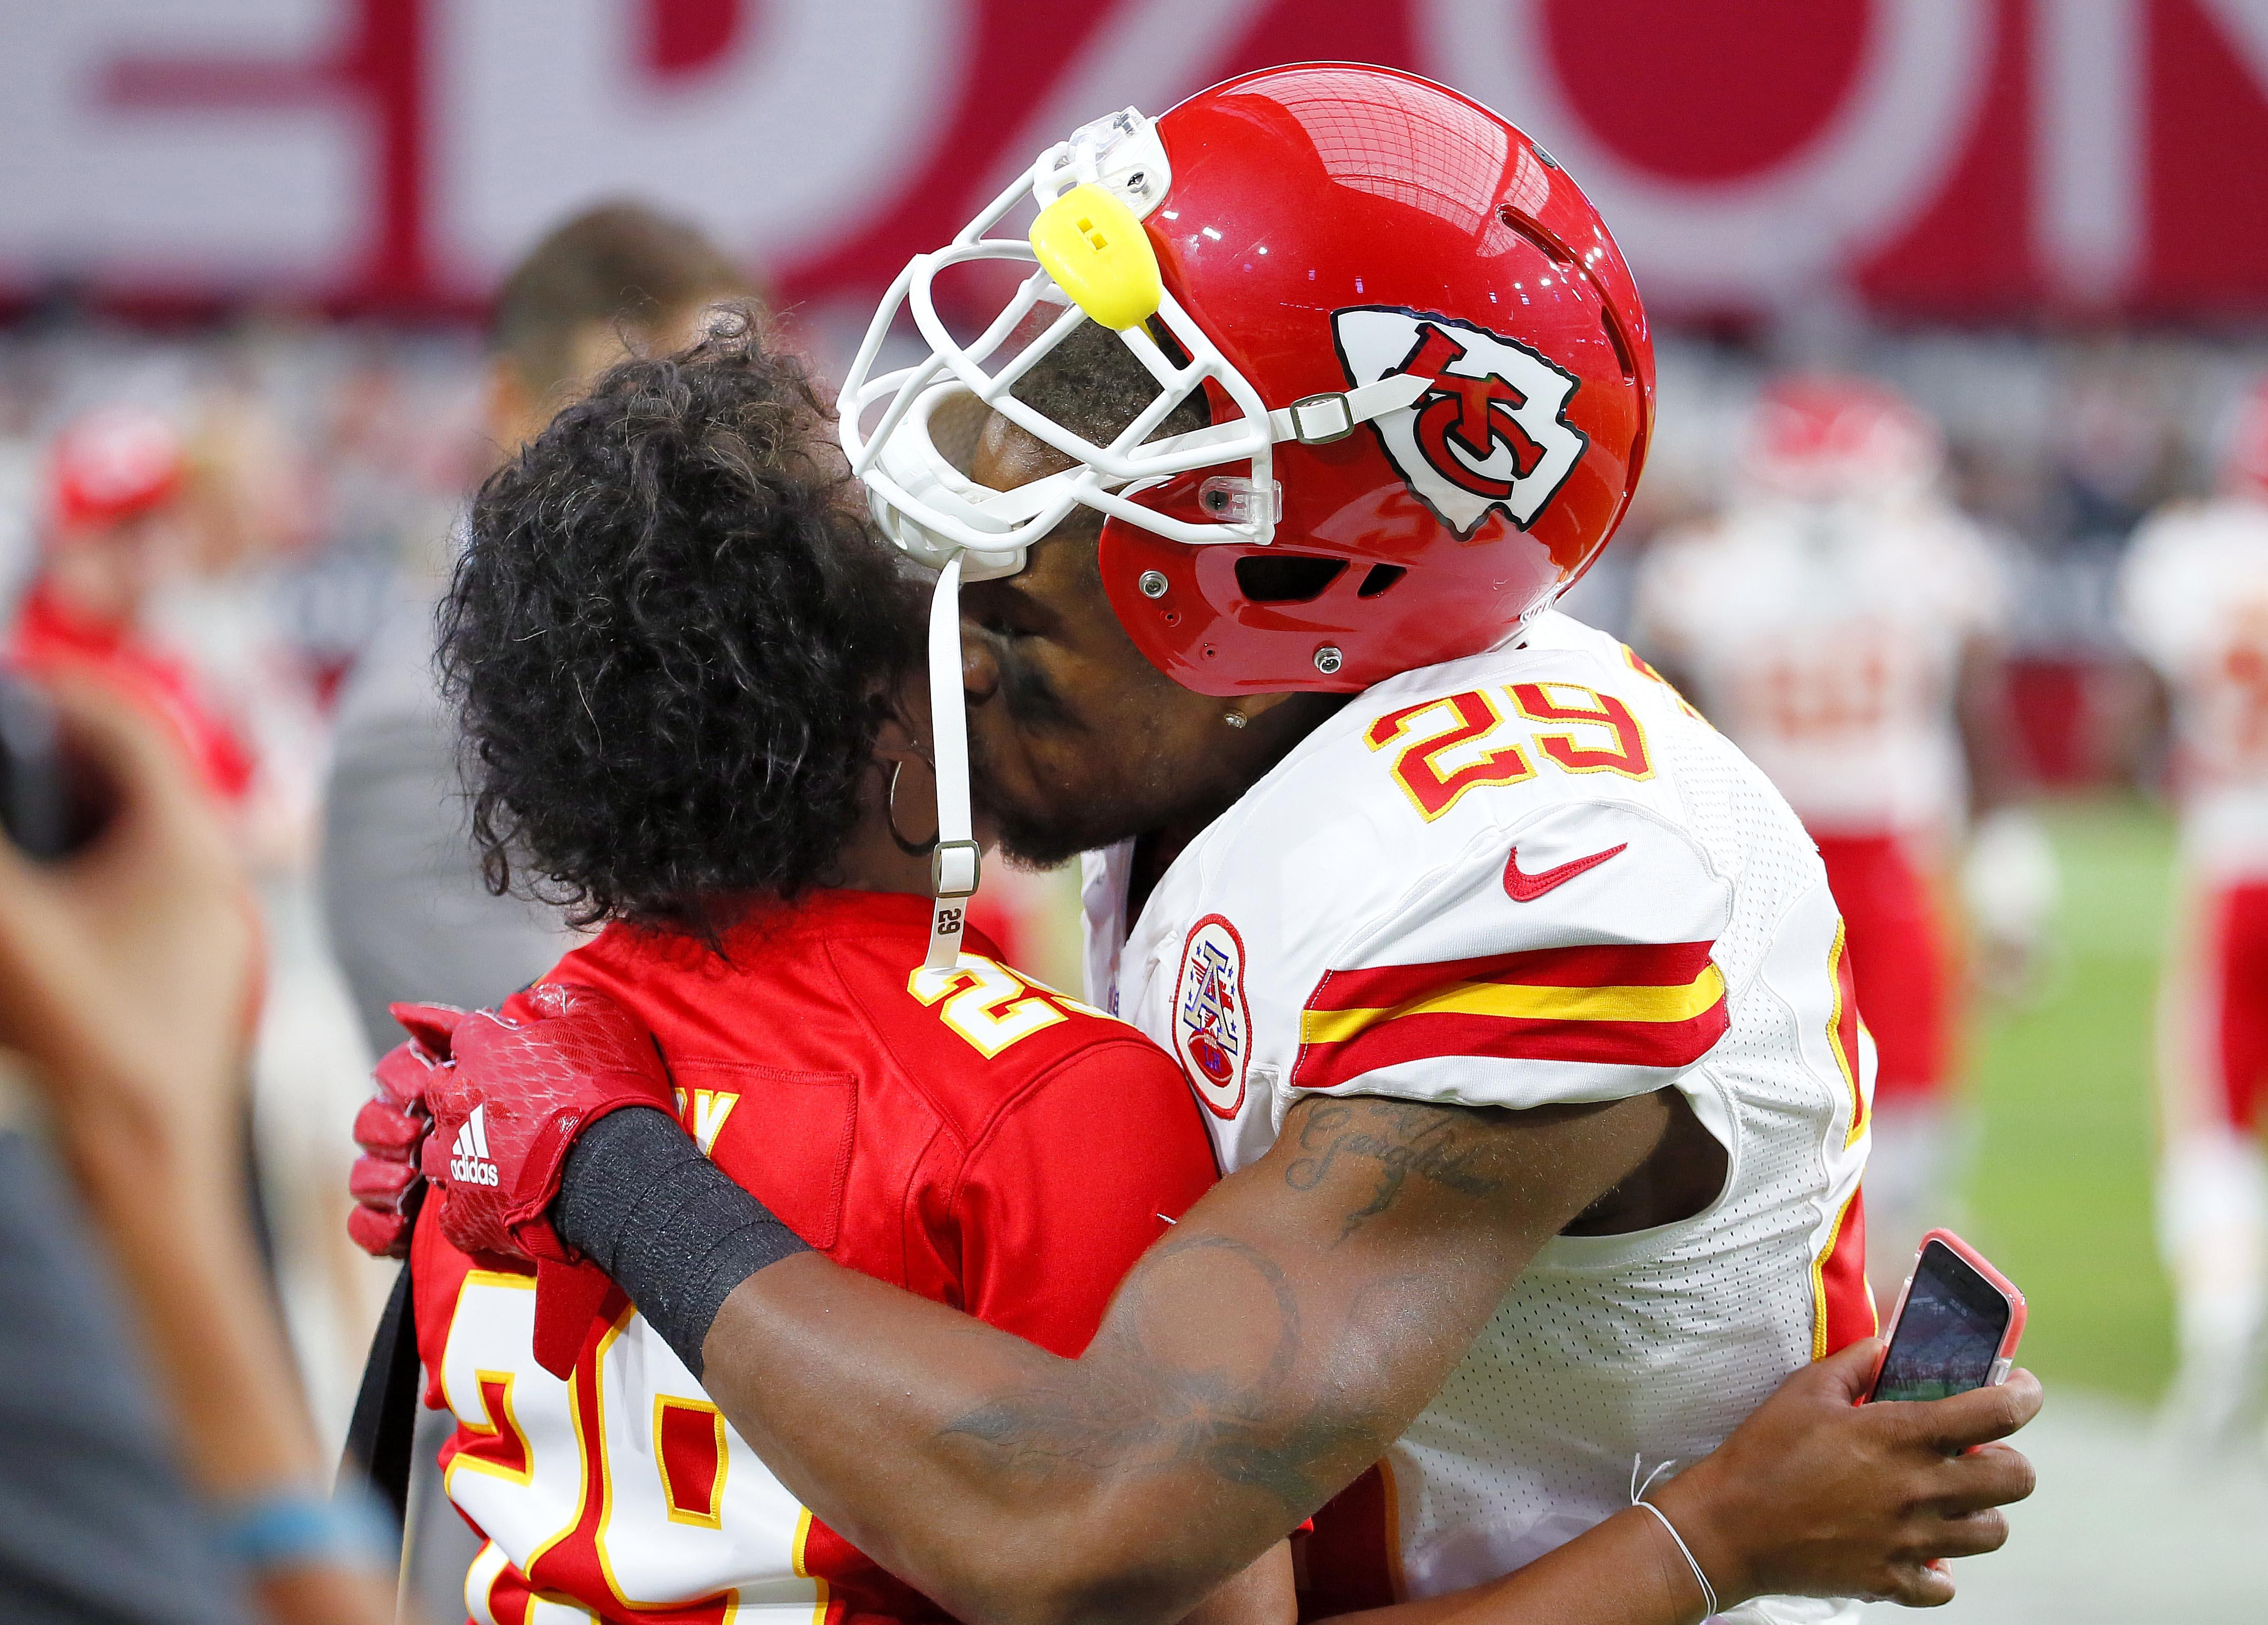 Chiefs Eric Berry back in Pro Bowl after cancer scare